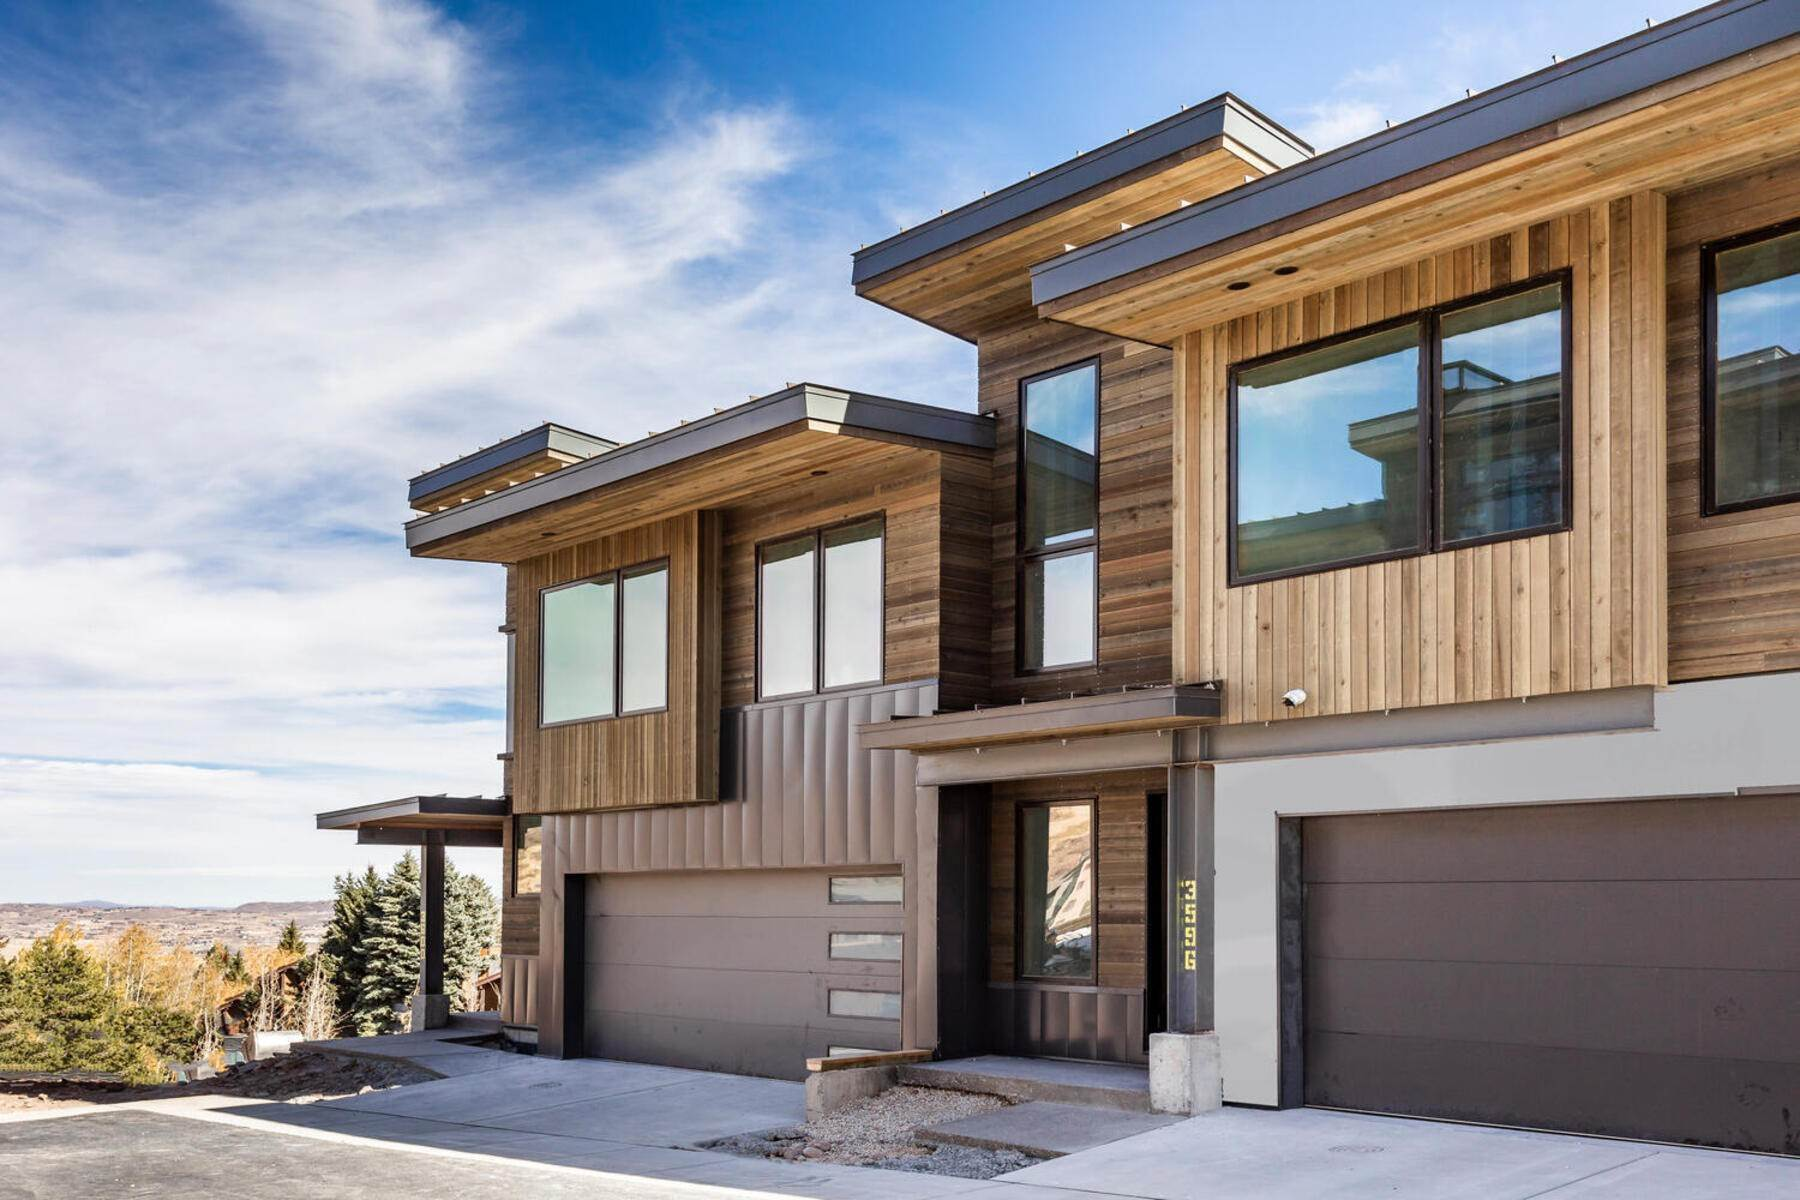 49. townhouses for Sale at Ski-In Town Homes in Canyons Village 3472 Ridgeline Drive Park City, Utah 84098 United States